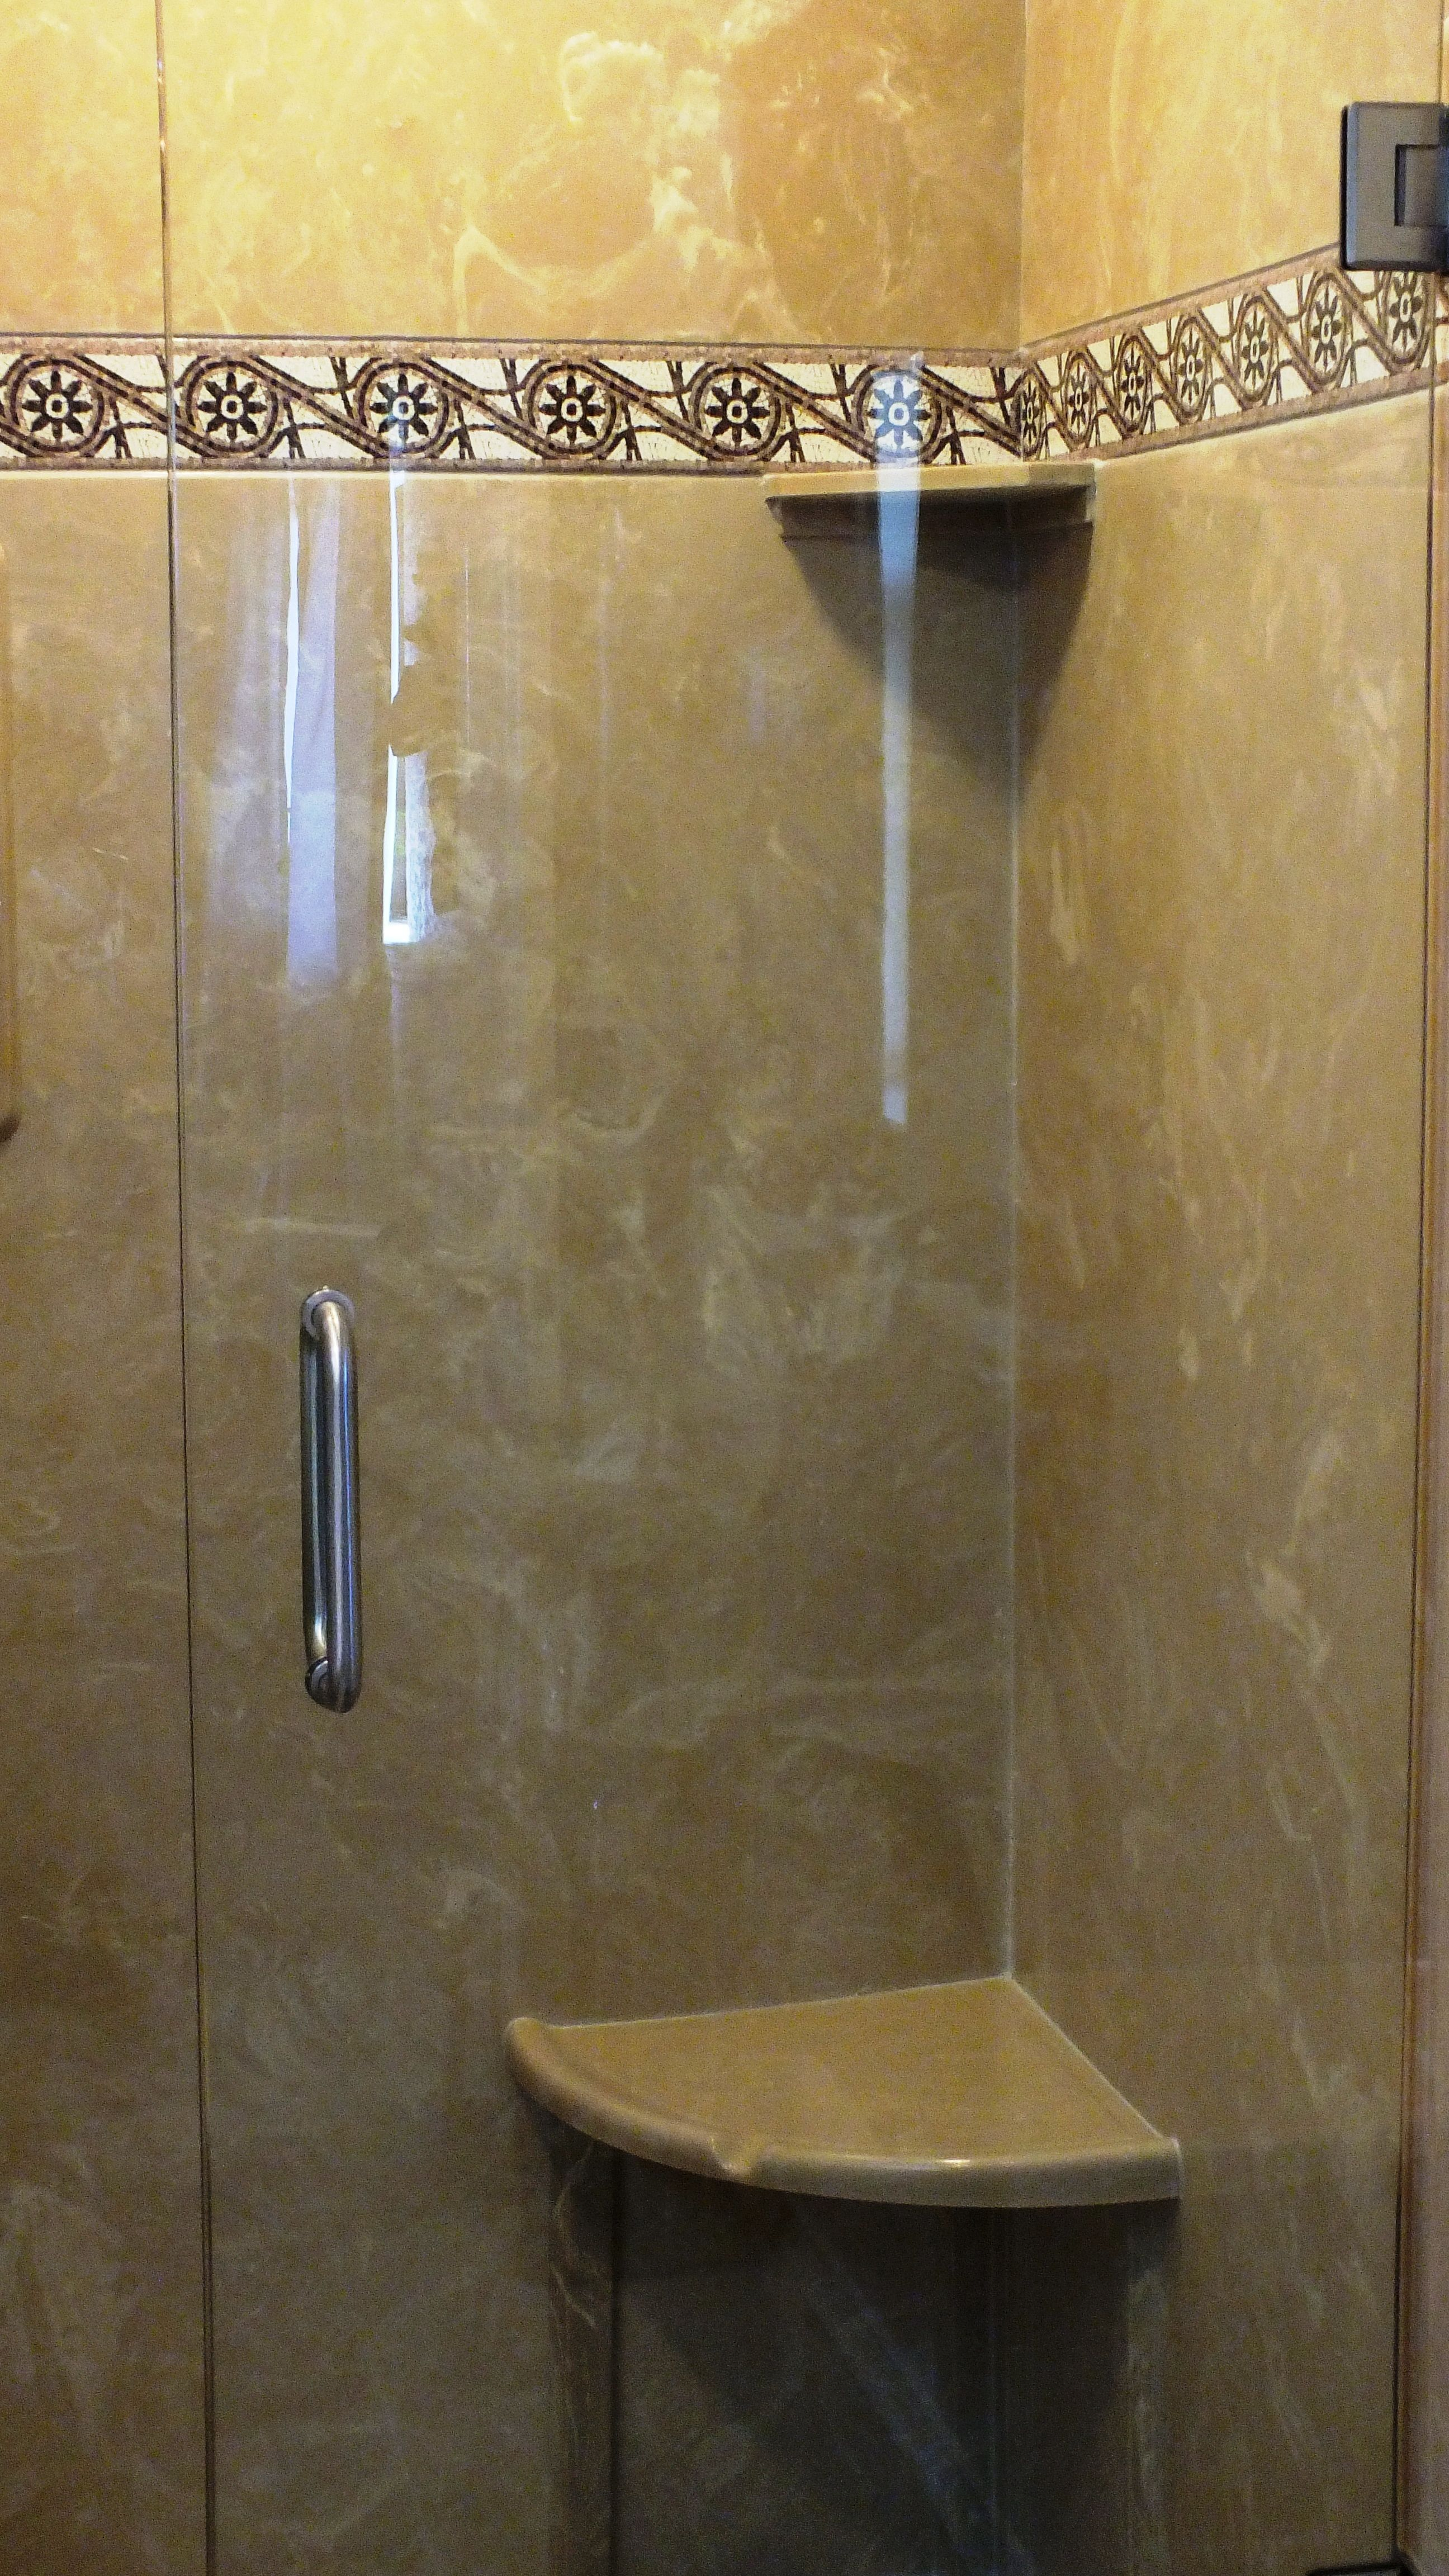 Beautiful Tuscan Sand Walls With Rieti Listello Trim, Heavy Glass Shower  Door U0026 Panel, Corner Seat, Corner Shelves U0026 Recessed Soap Holder